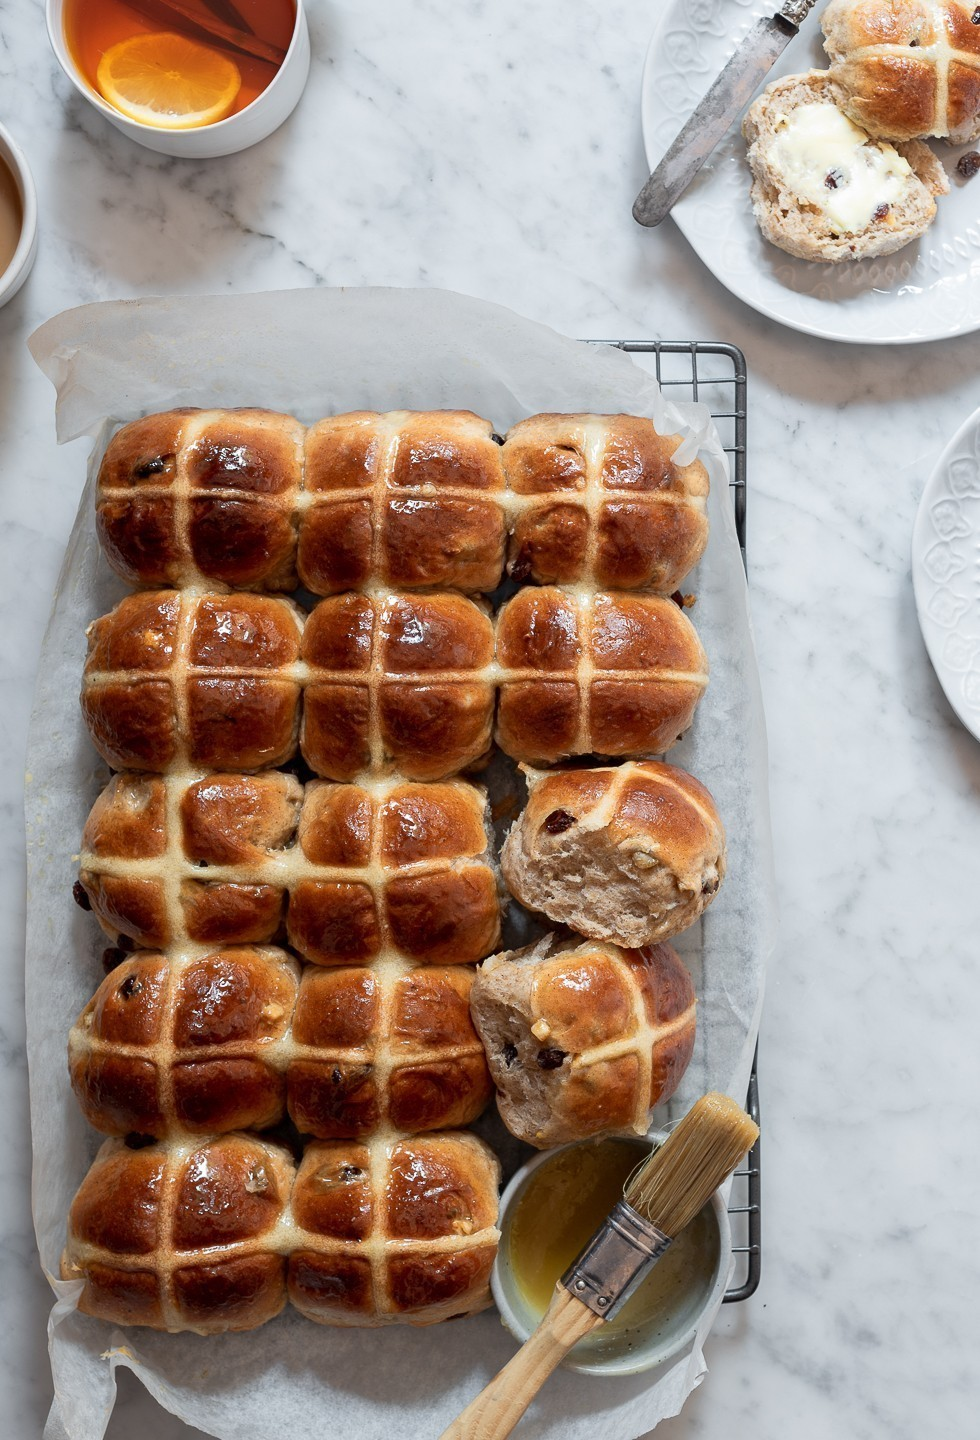 Honey butter hot cross buns